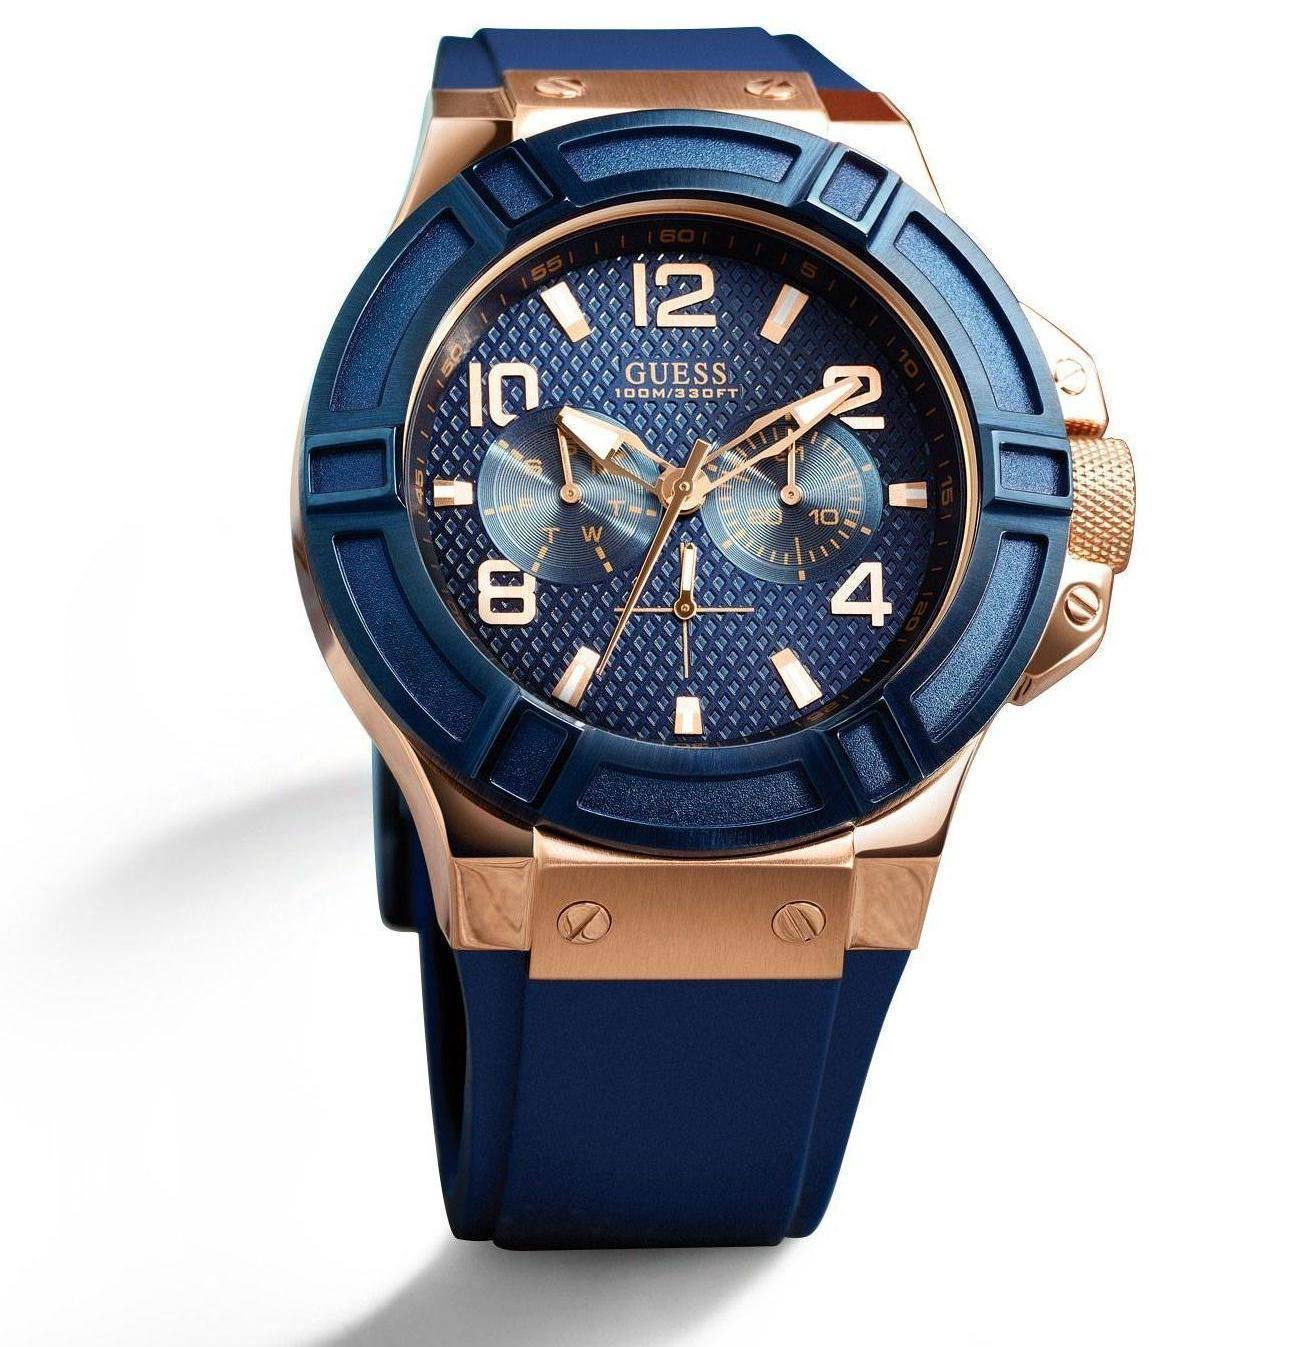 00bb343e195a5 GUESS RIGOR BLUE WATCH - WatchMarkaz.pk - Watches in Pakistan ...